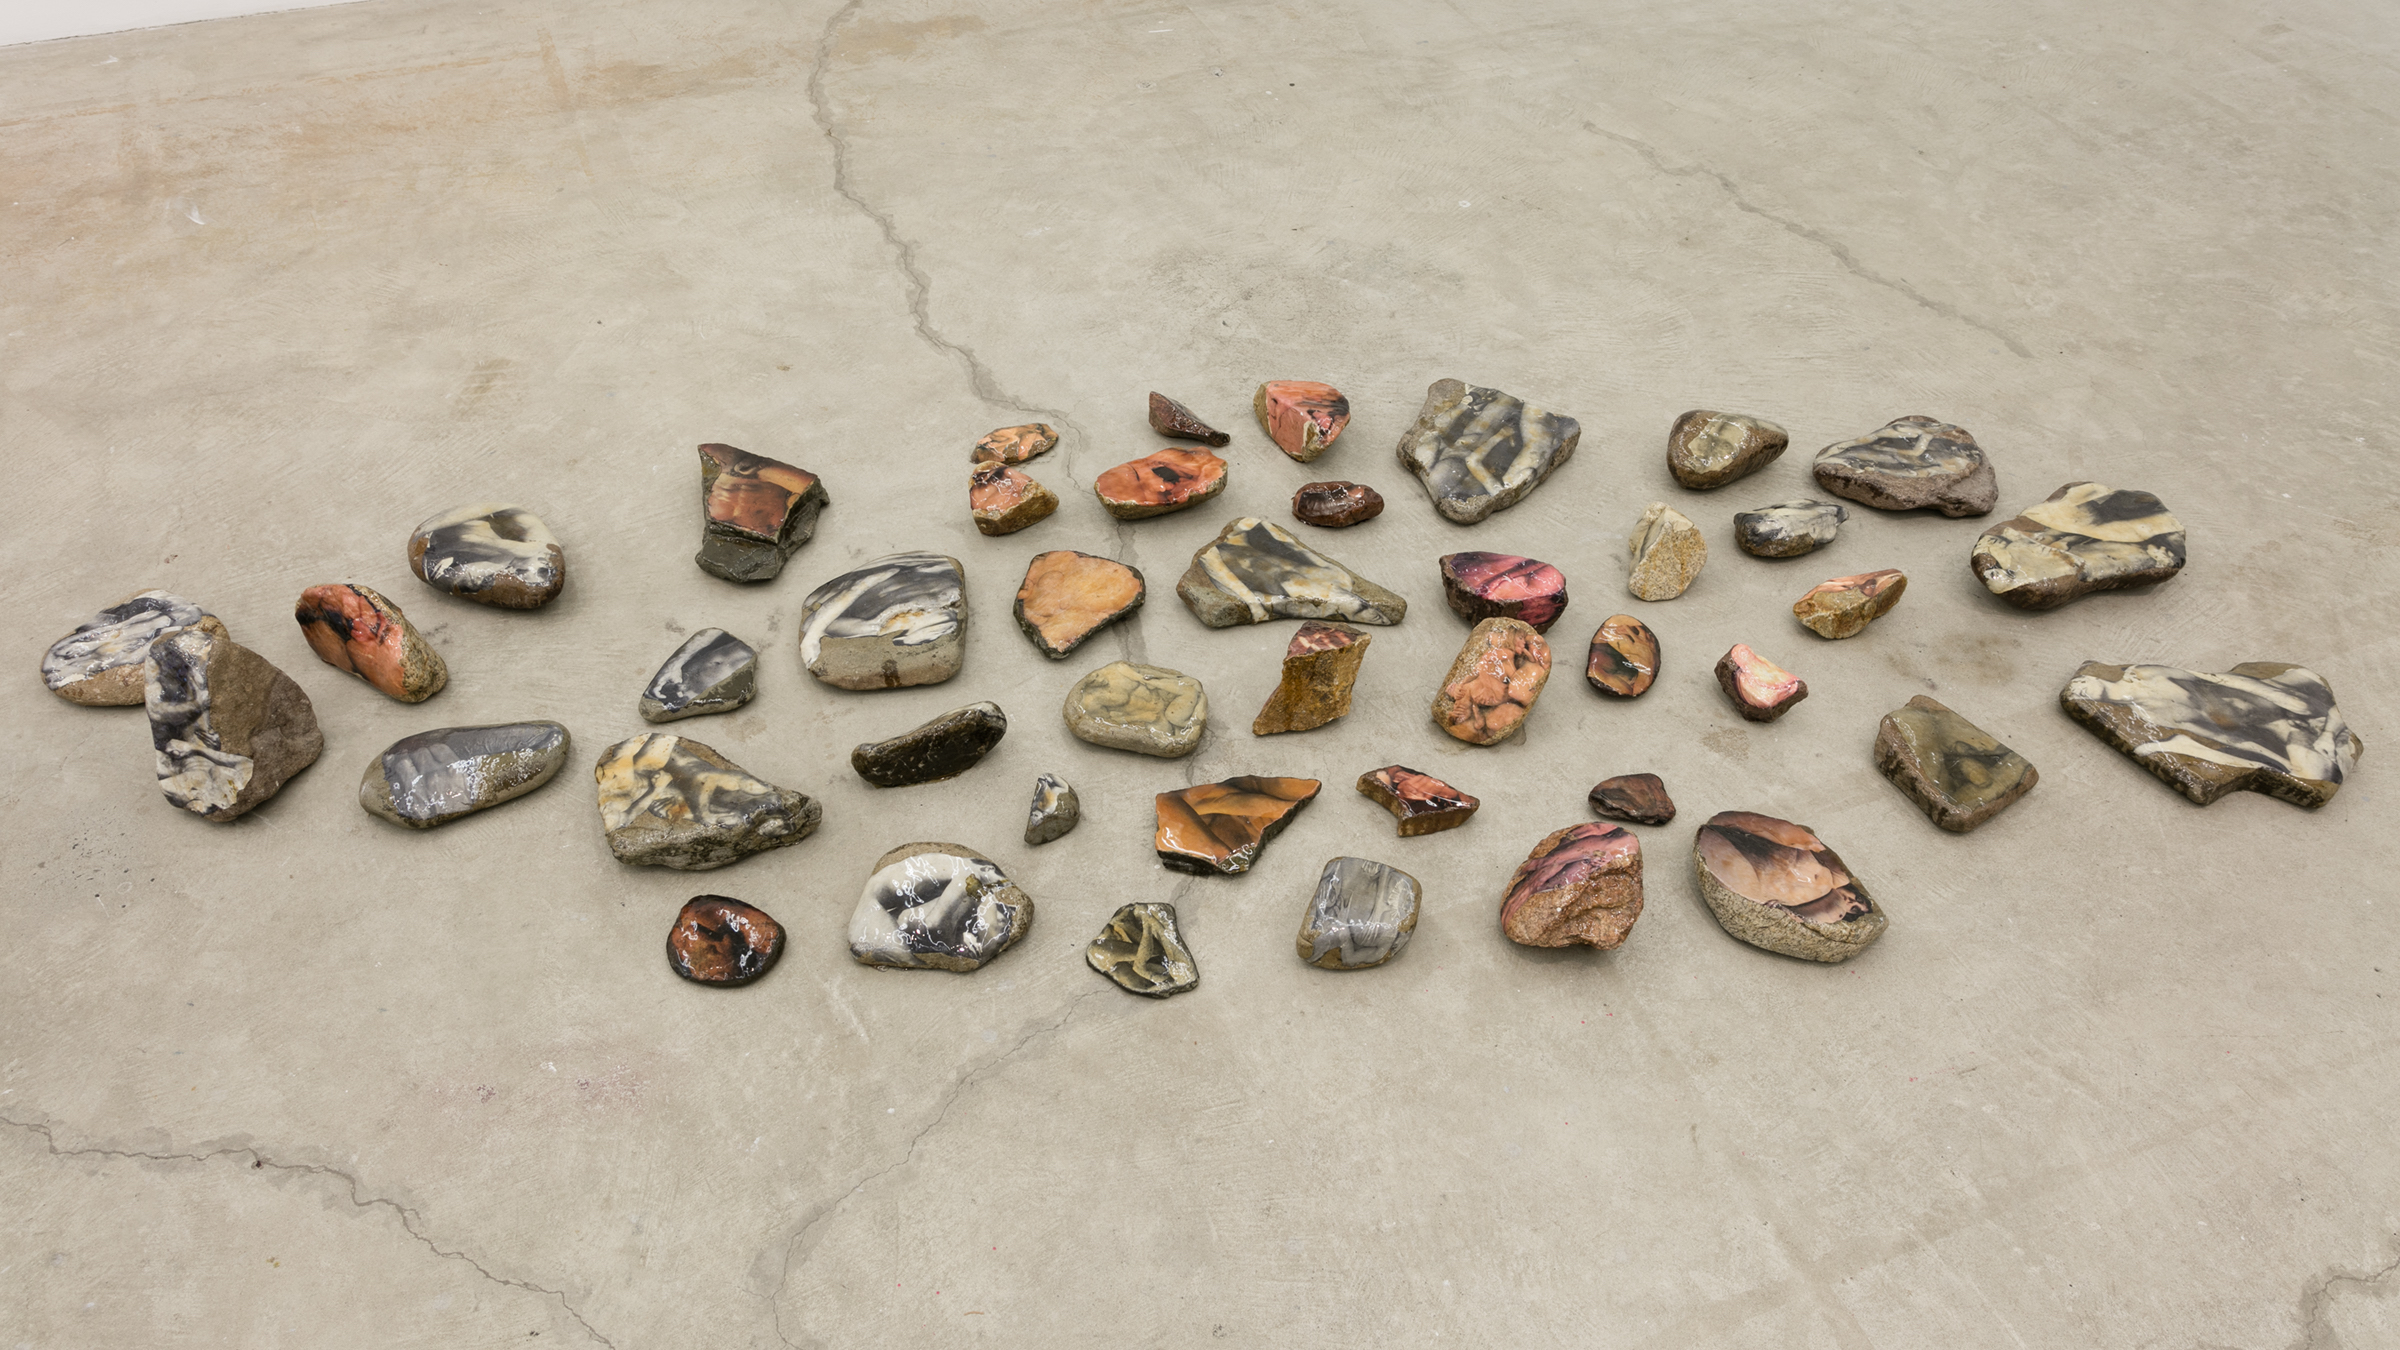 Aura Rosenberg, Dialectical Porn Rocks , 1989-2016, rocks, newspaper, xerox, resin, dimensions variable,Courtesy the Artist and Martos Gallery, New York